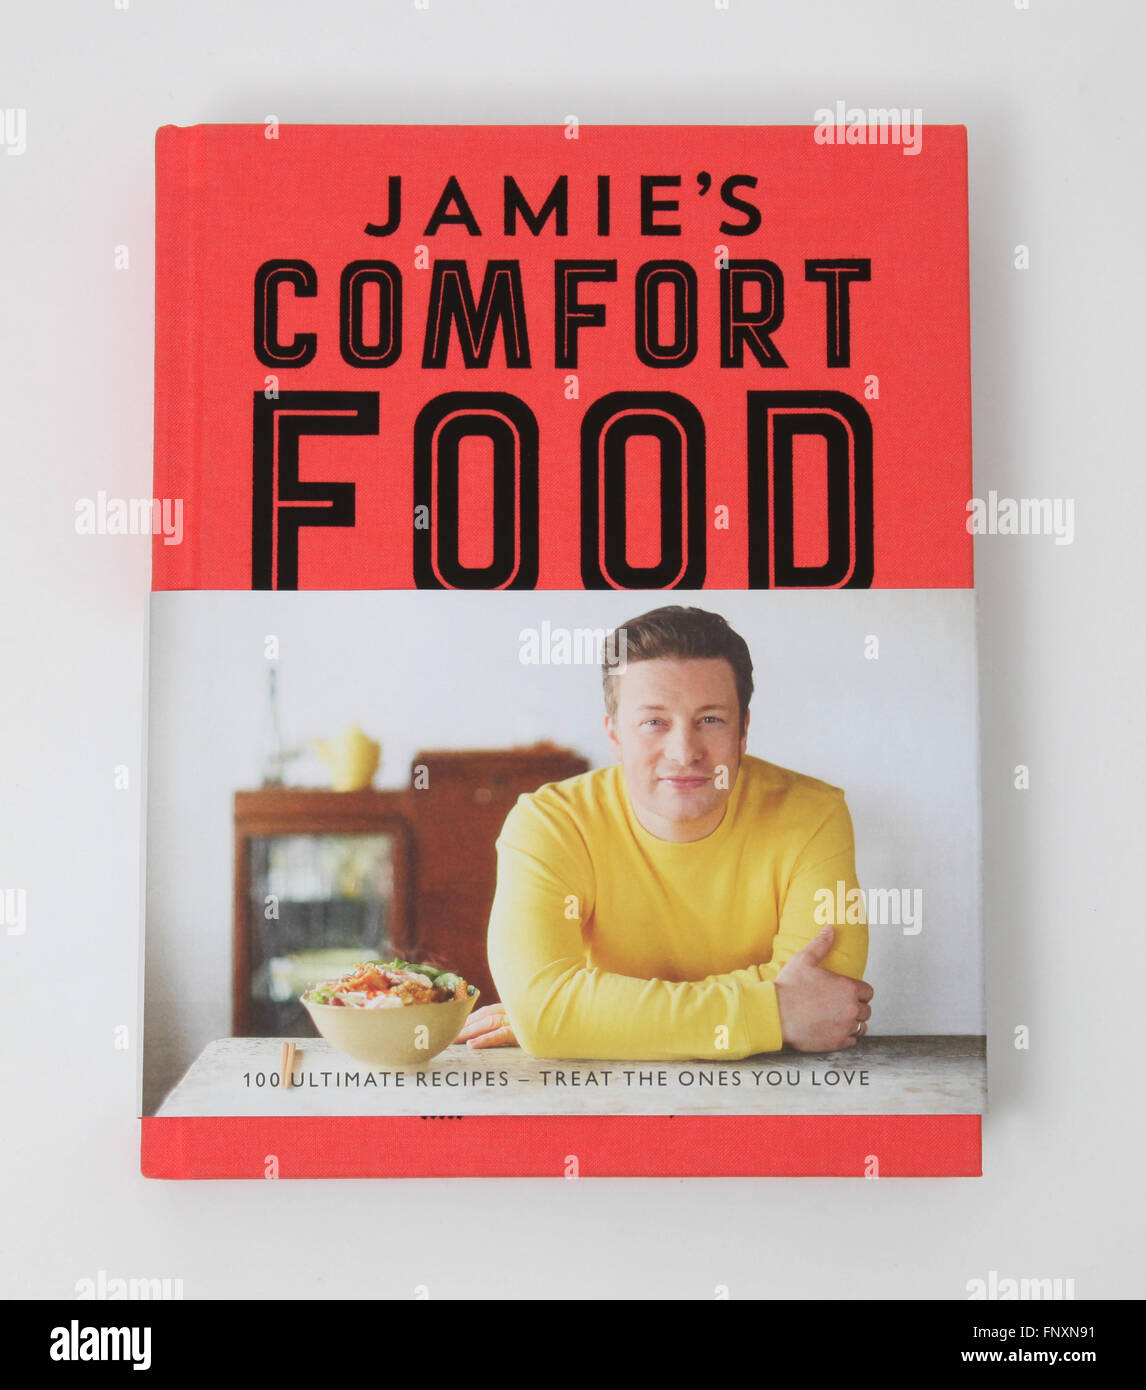 A cookery book called Jamie's Comfort Food by Jamie Oliver. - Stock Image